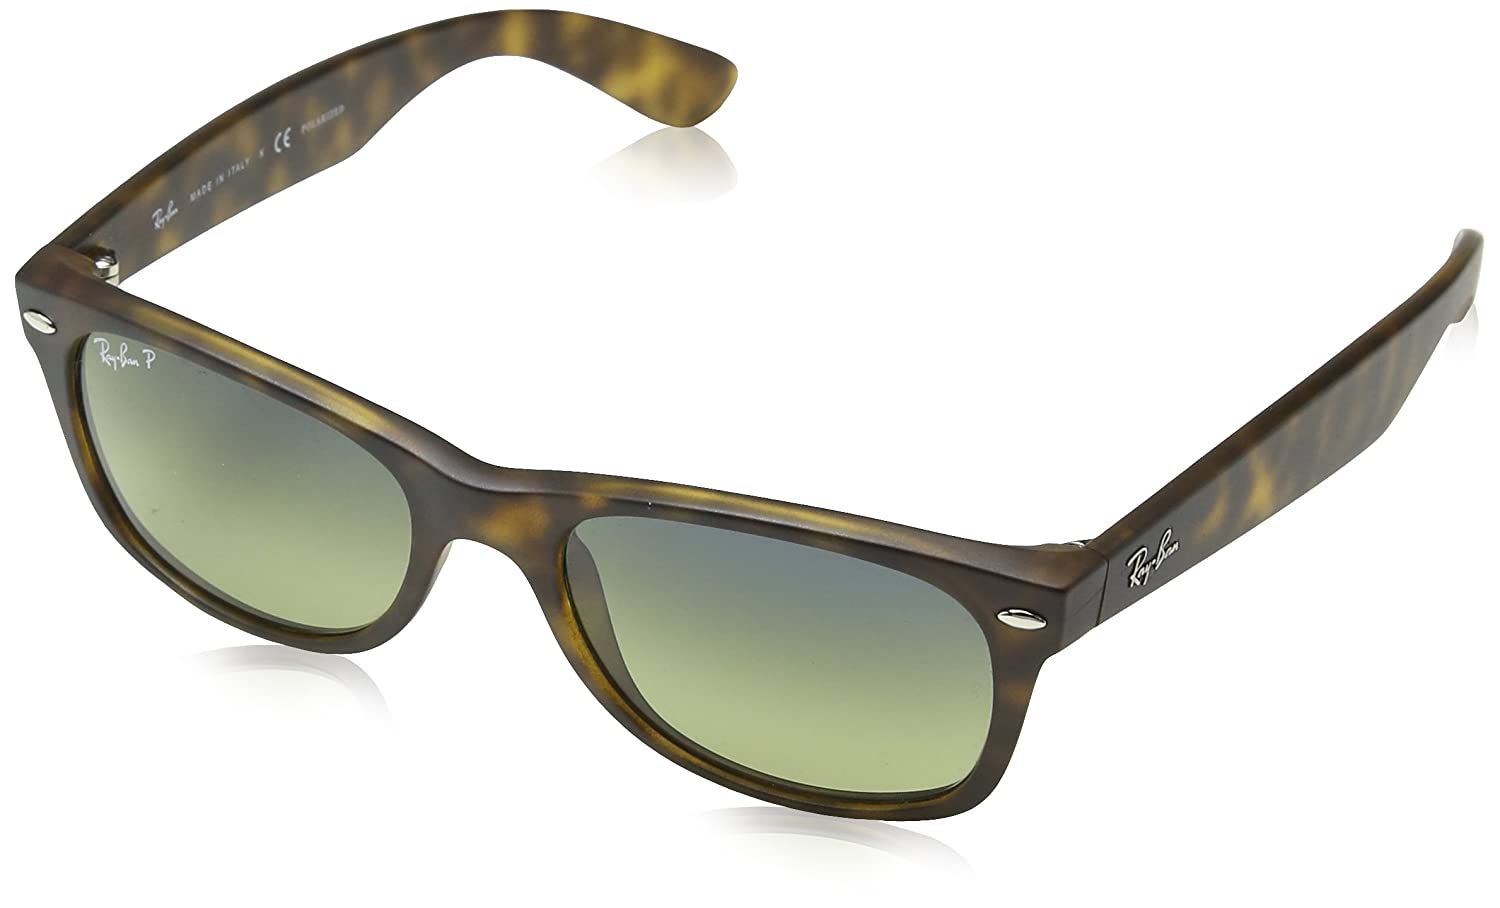 TALLA 52 mm. Ray-Ban New Wayfarer, Gafas de Sol Unisex  adulto